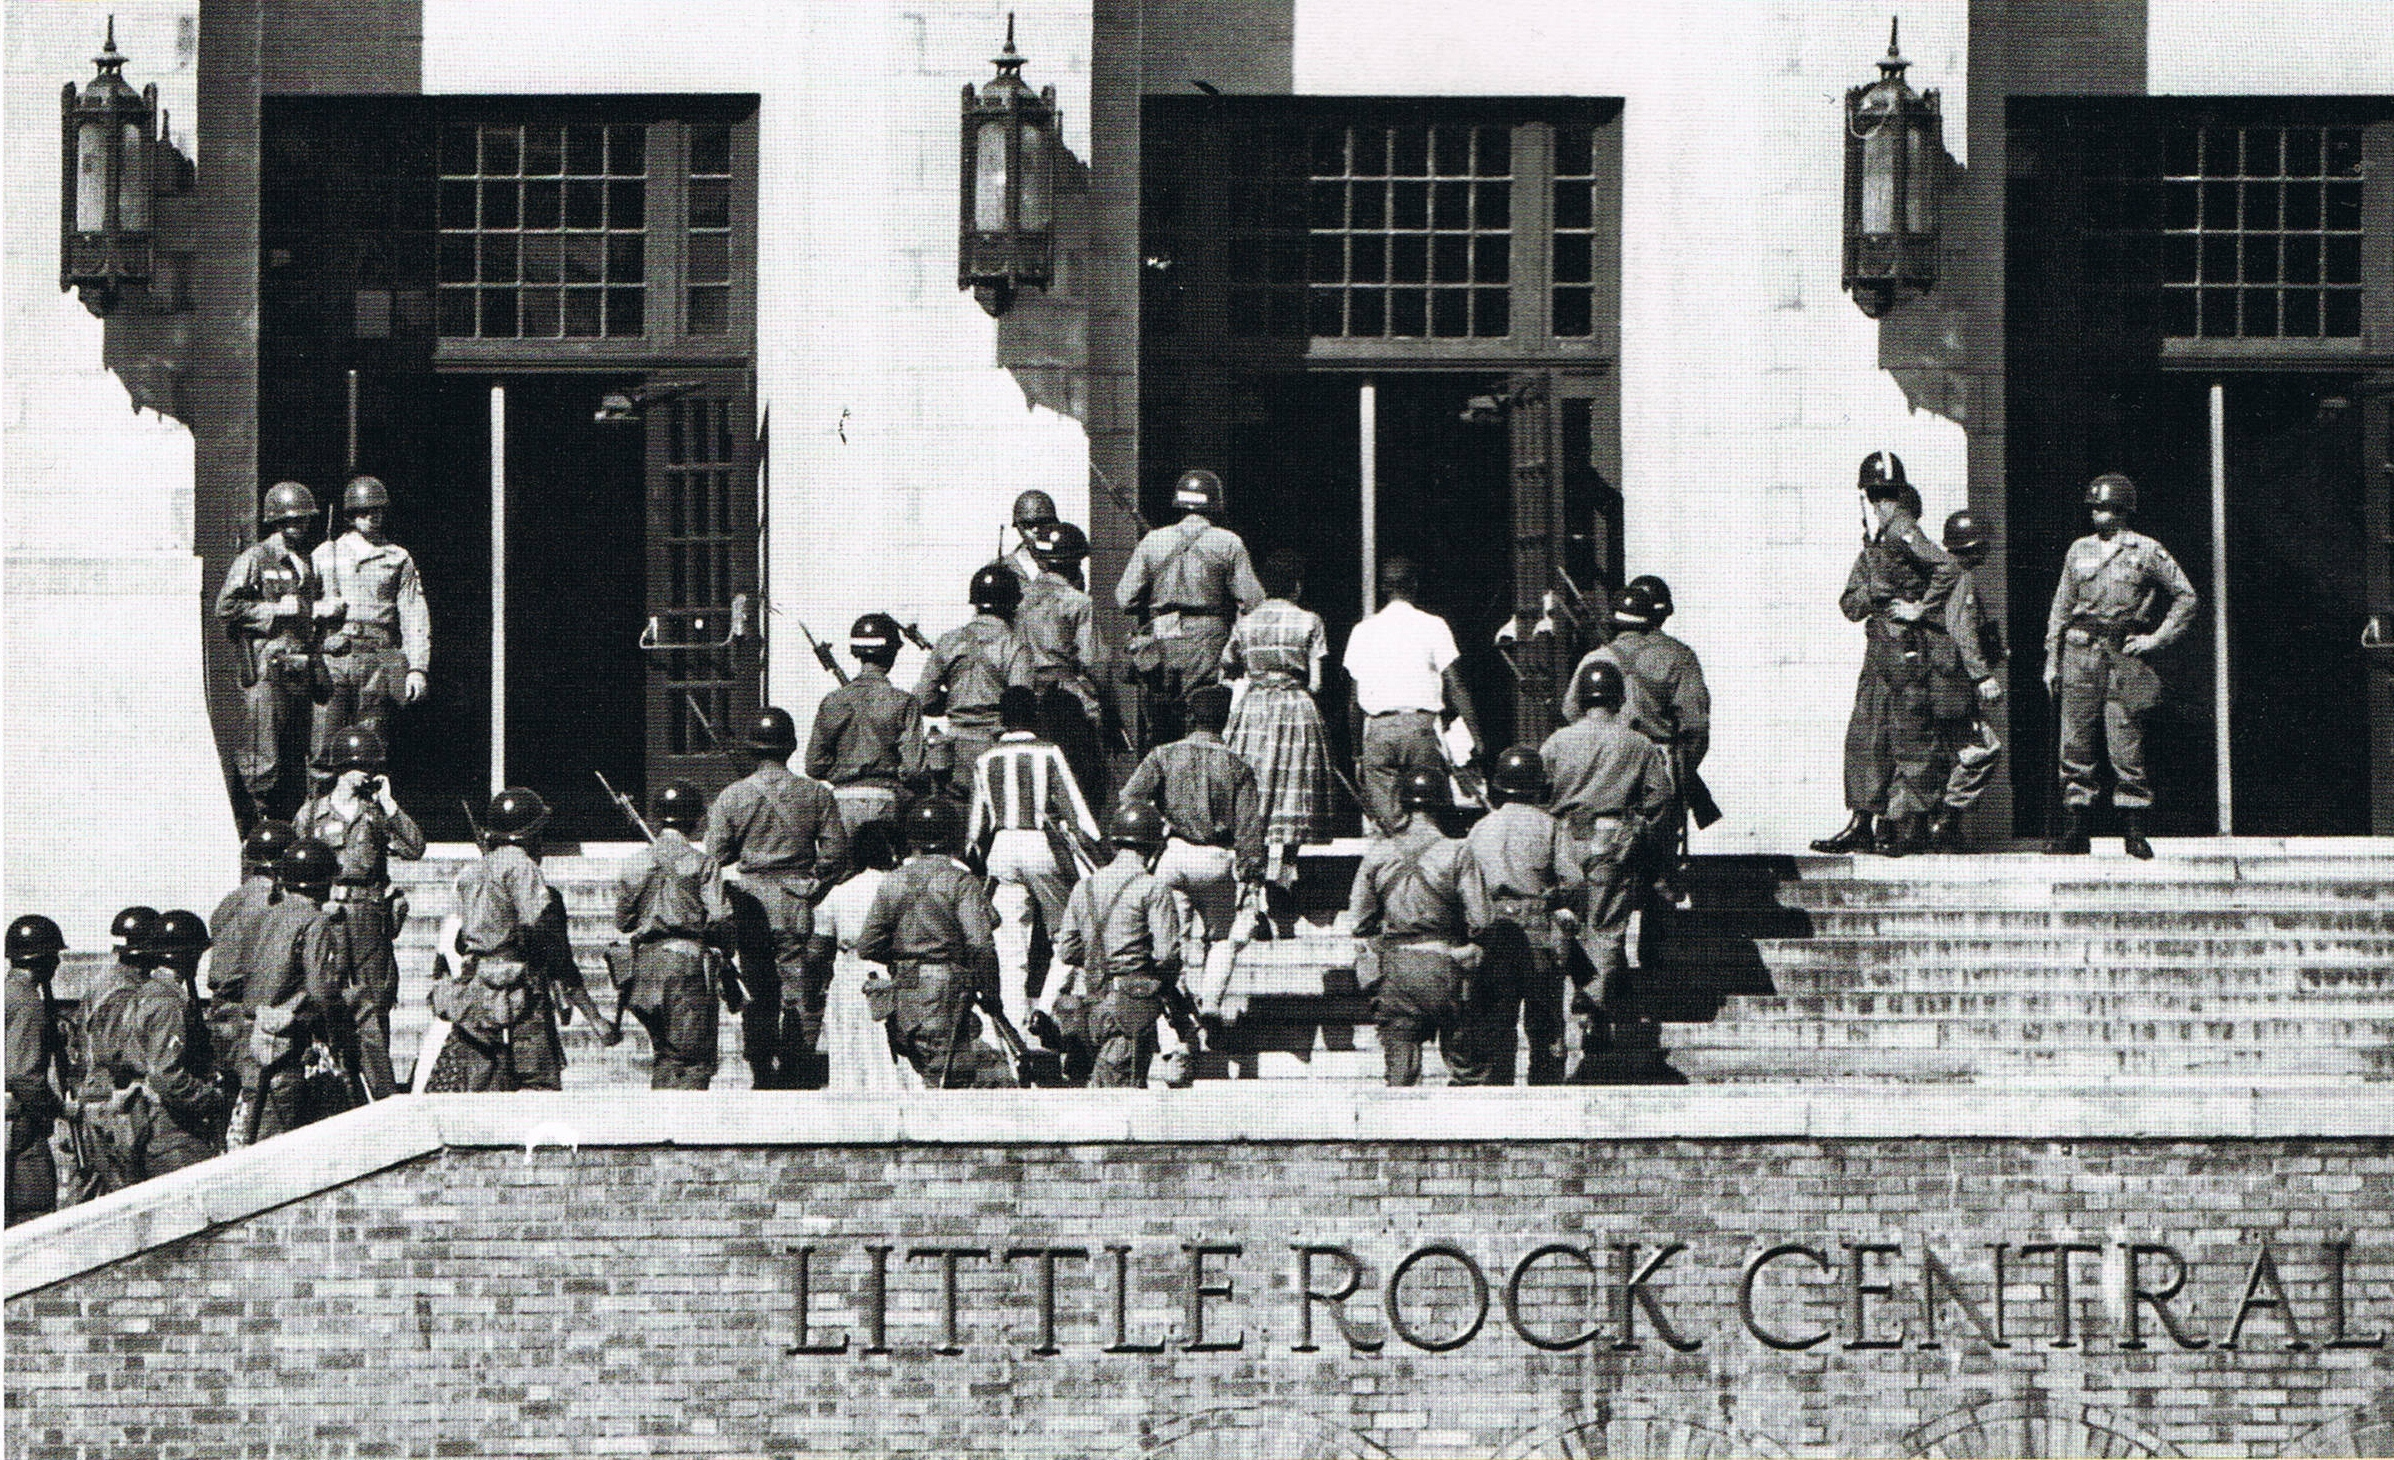 In 1957, Arkansas Governor Orval Faubus refused to allow the integration of Little Rock High School following the Supreme Court Brown vs. Board of Education decision. President Eisenhower subsequently ordered the US Army to escort nine students into the school.